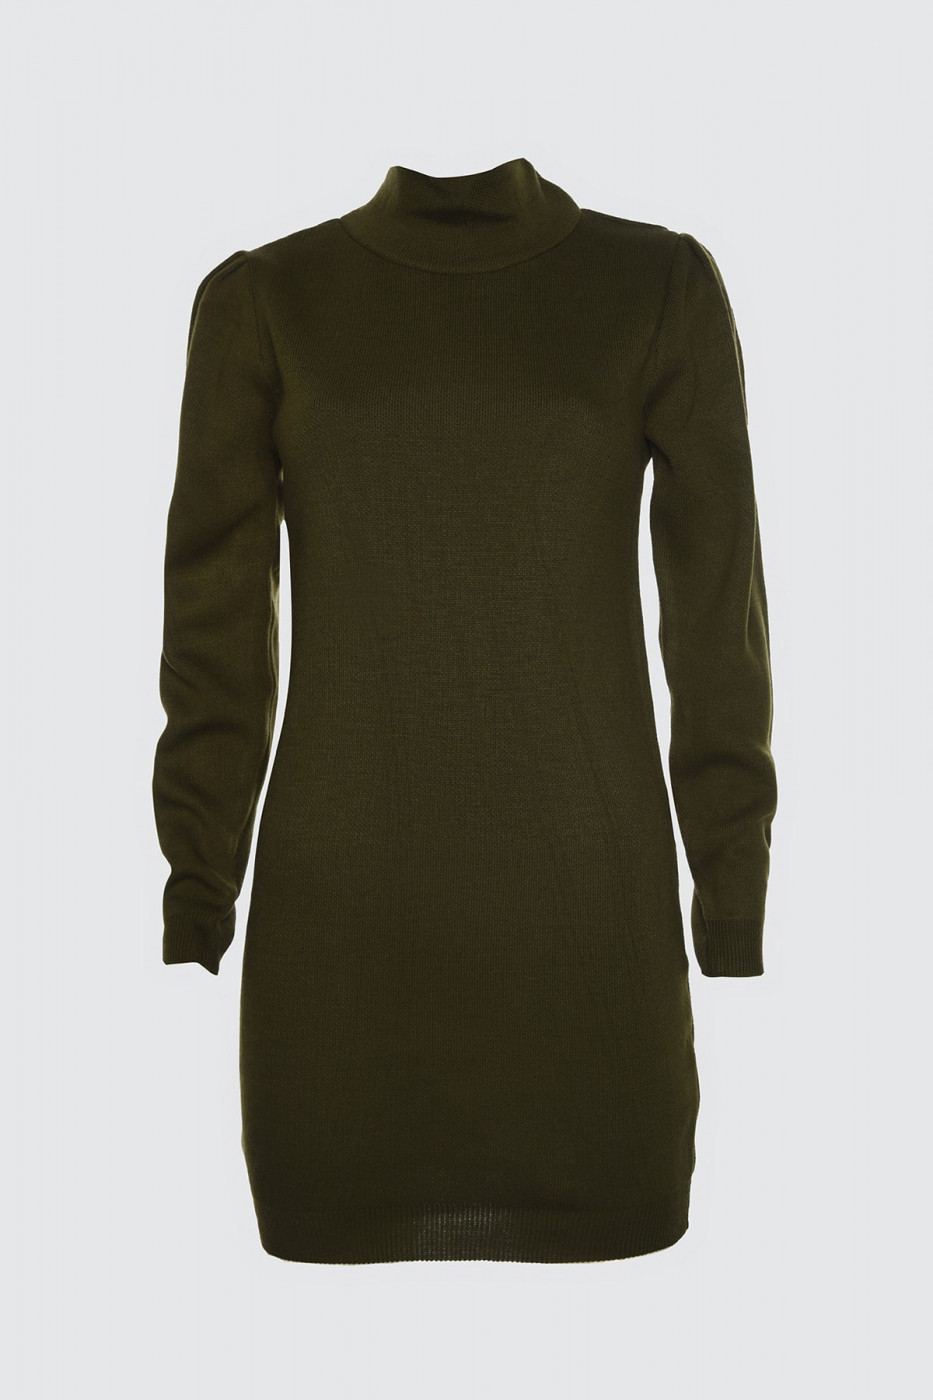 Trendyol Khaki Flat Color Sleeve Detailed Knitwear Dress